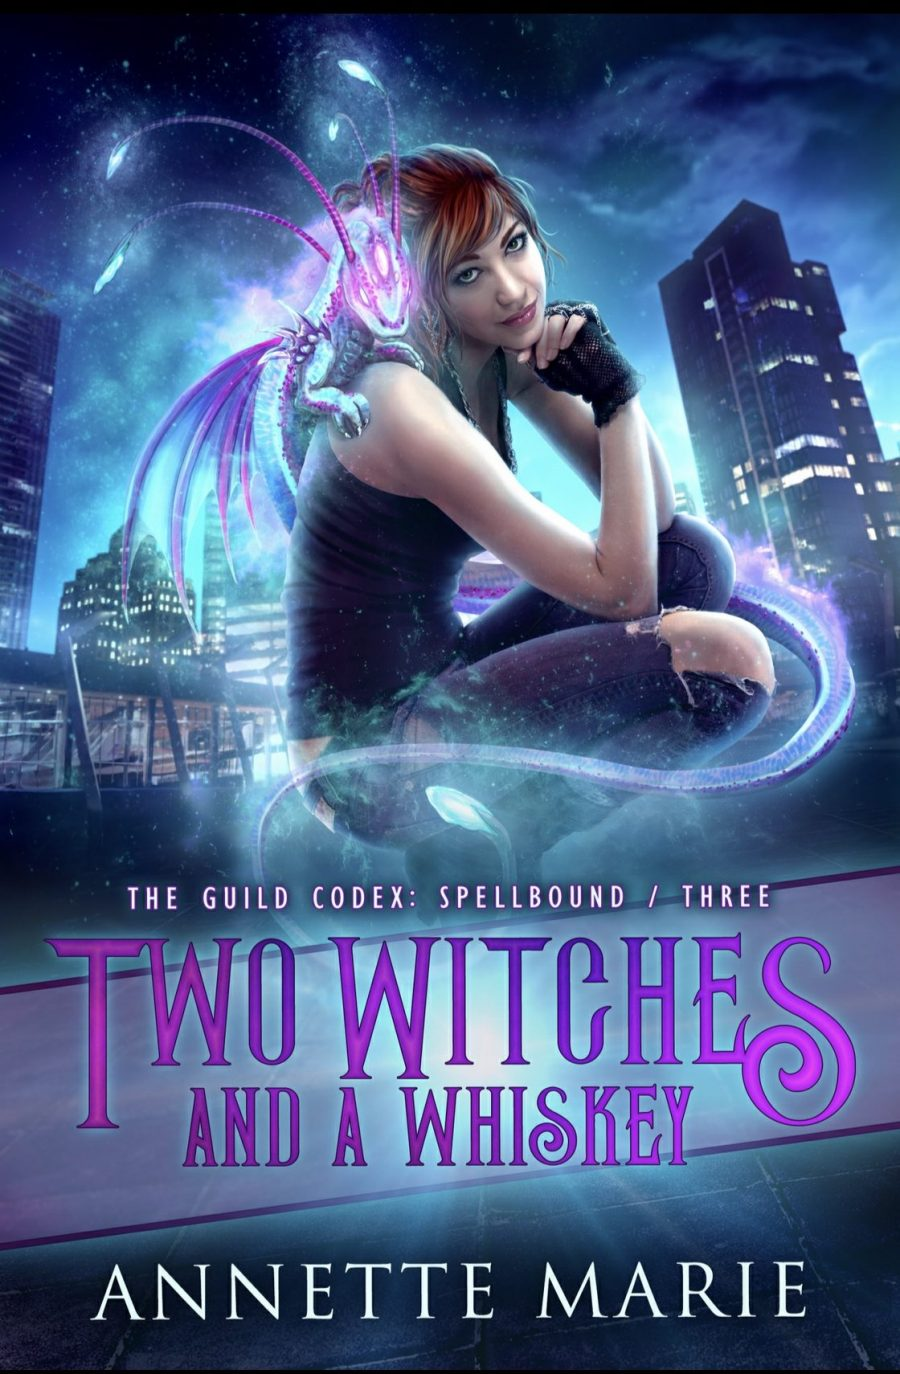 Two Witches and a Whiskey by Annette Marie – A Book Review